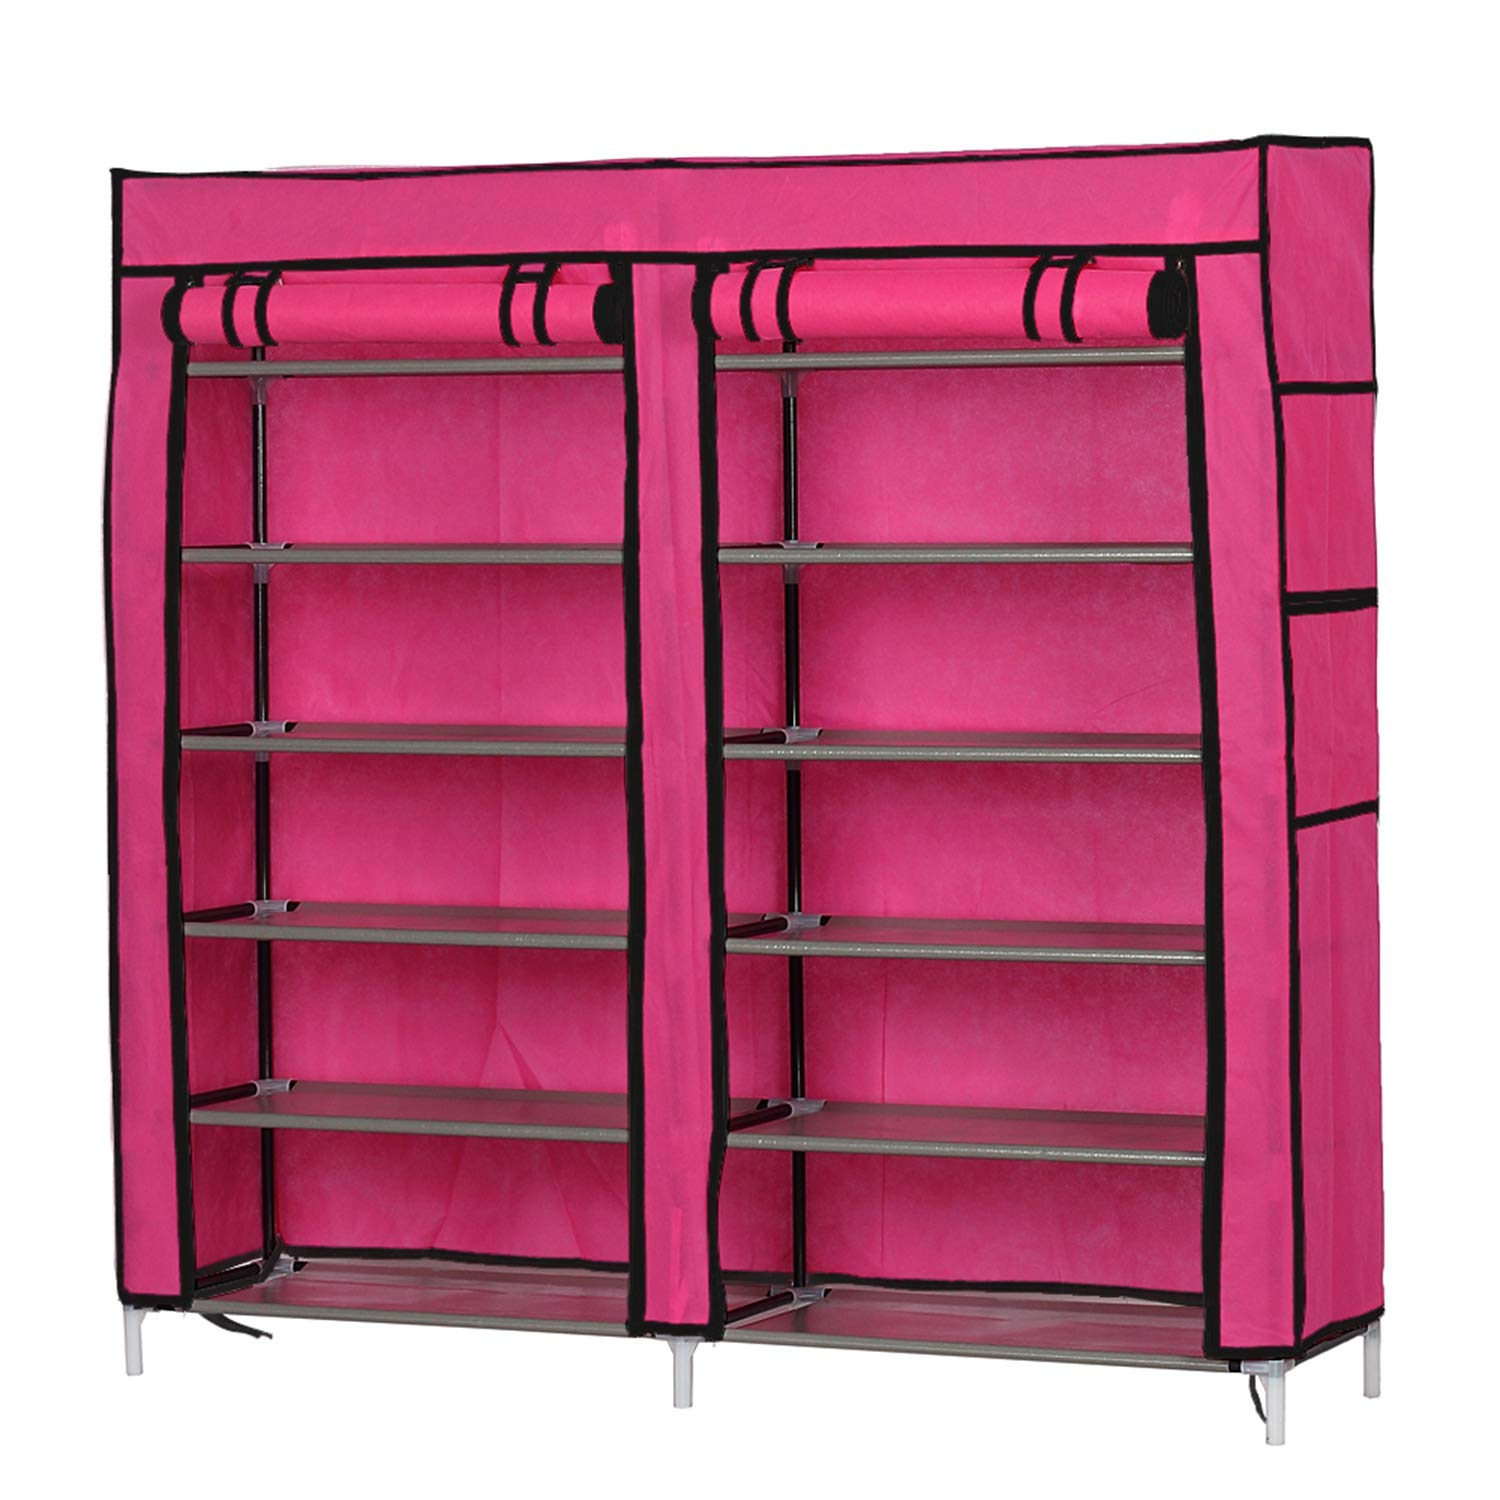 OTU Fashionable Room-Saving 6 Row 2 Line/Dual Rows 12 Lattices Non-Woven Fabric Shoe Rack Rose Red Organizers Storage